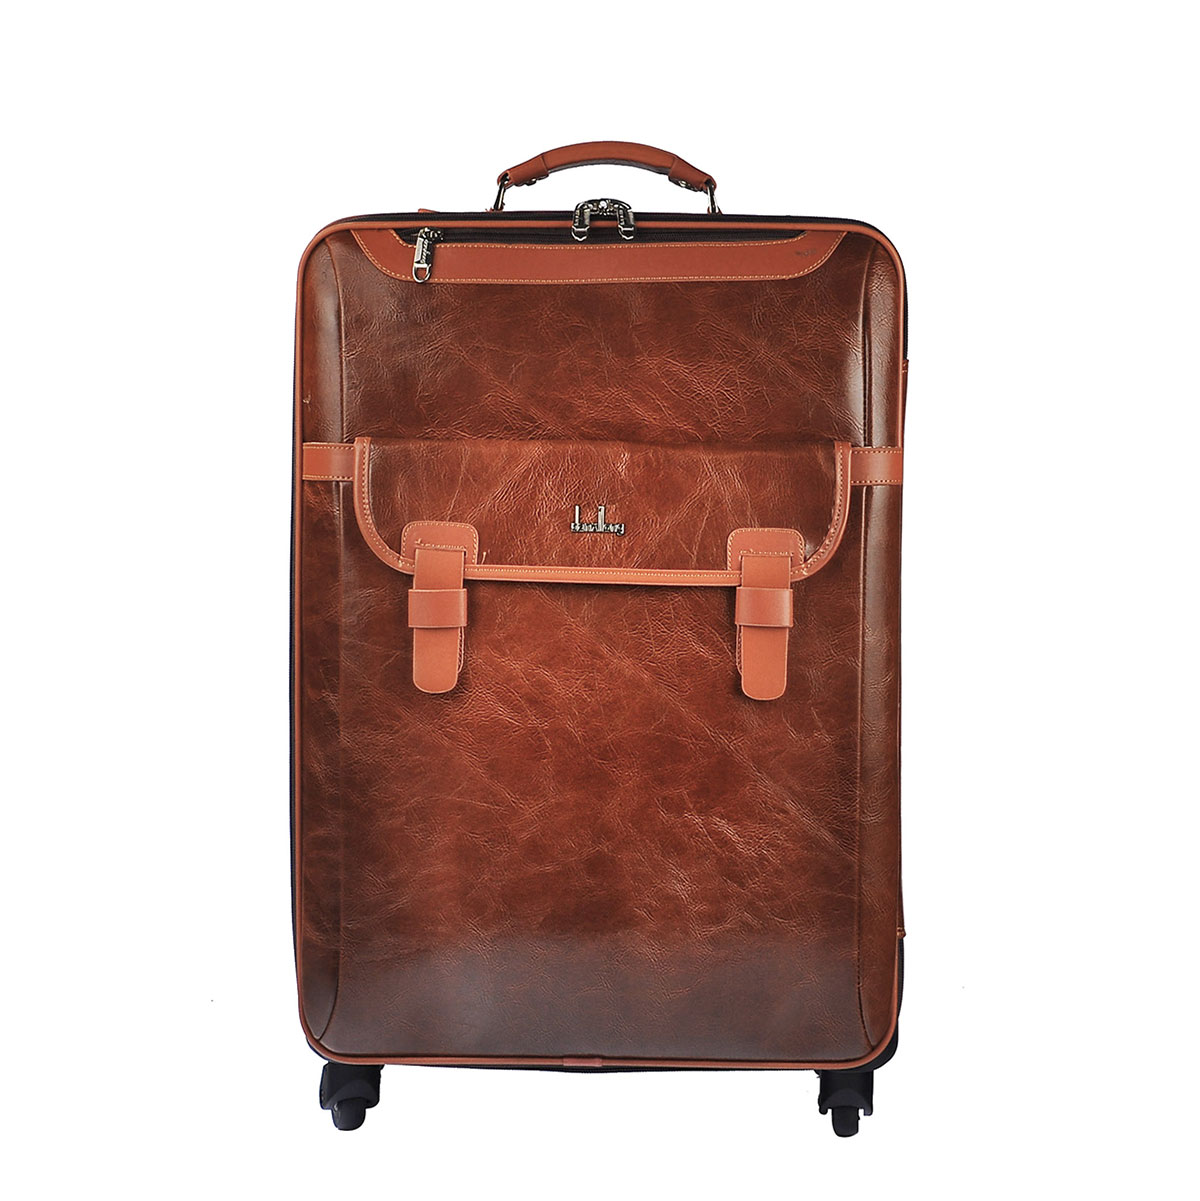 Suitcase | Luggage And Suitcases - Part 99